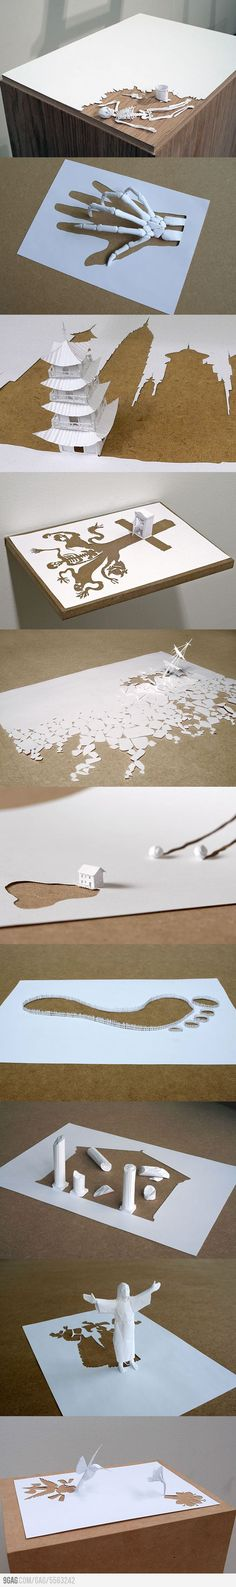 Amazing paper art by Peter Callesen